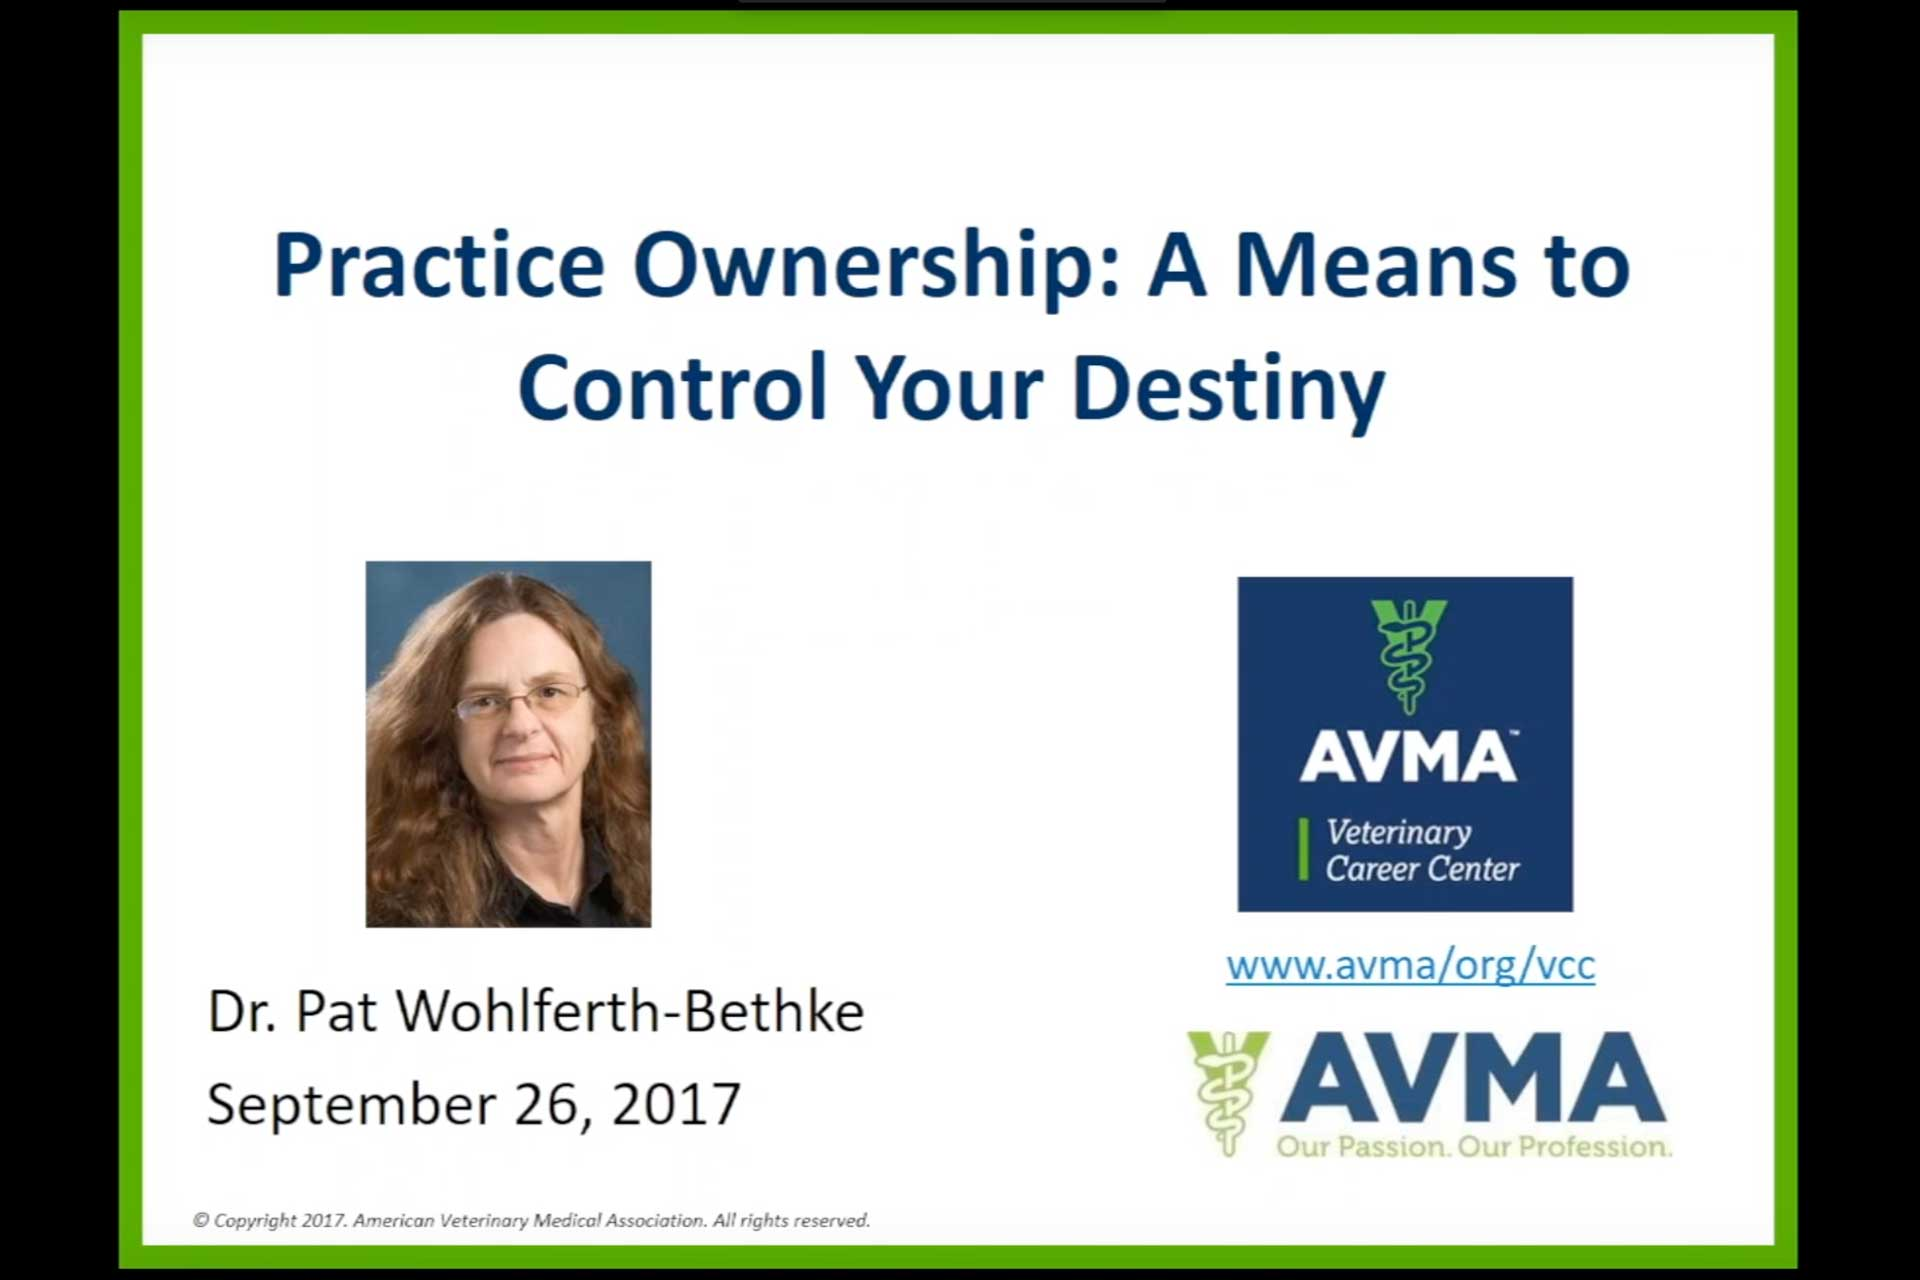 Practice Ownership